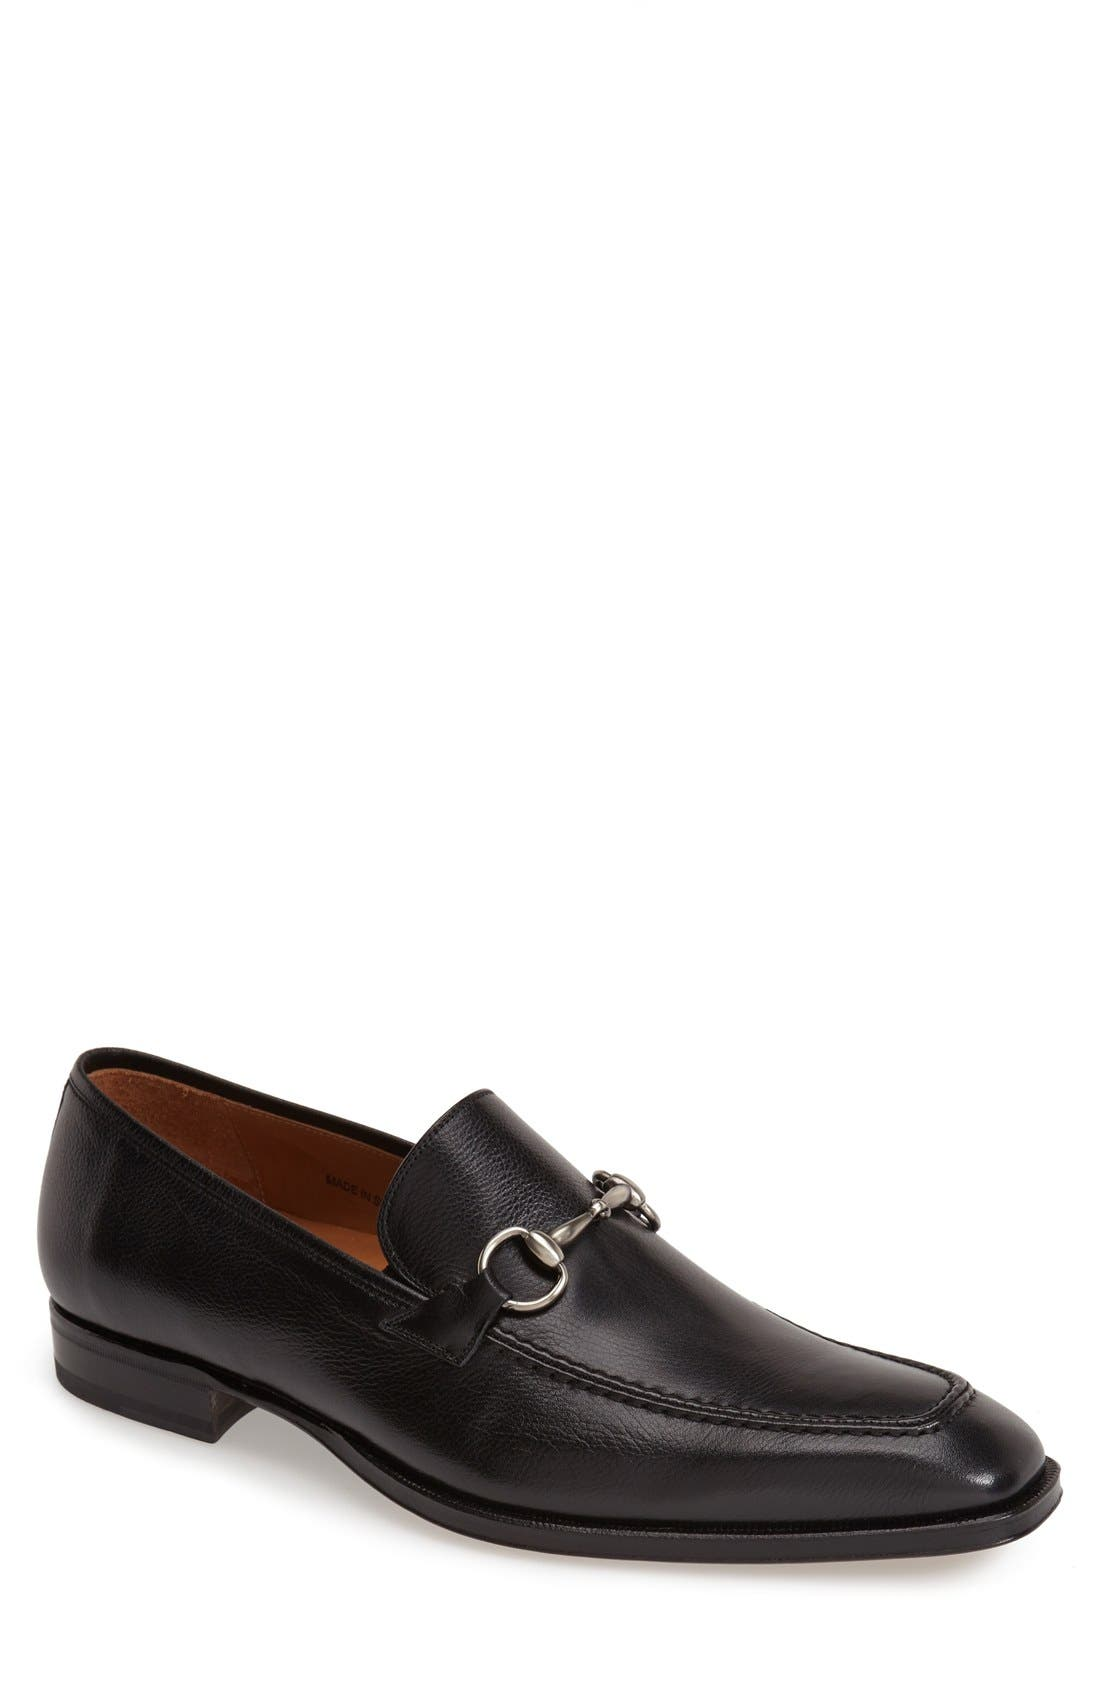 MEZLAN 'Tours' Leather Bit Loafer, Main, color, BLACK